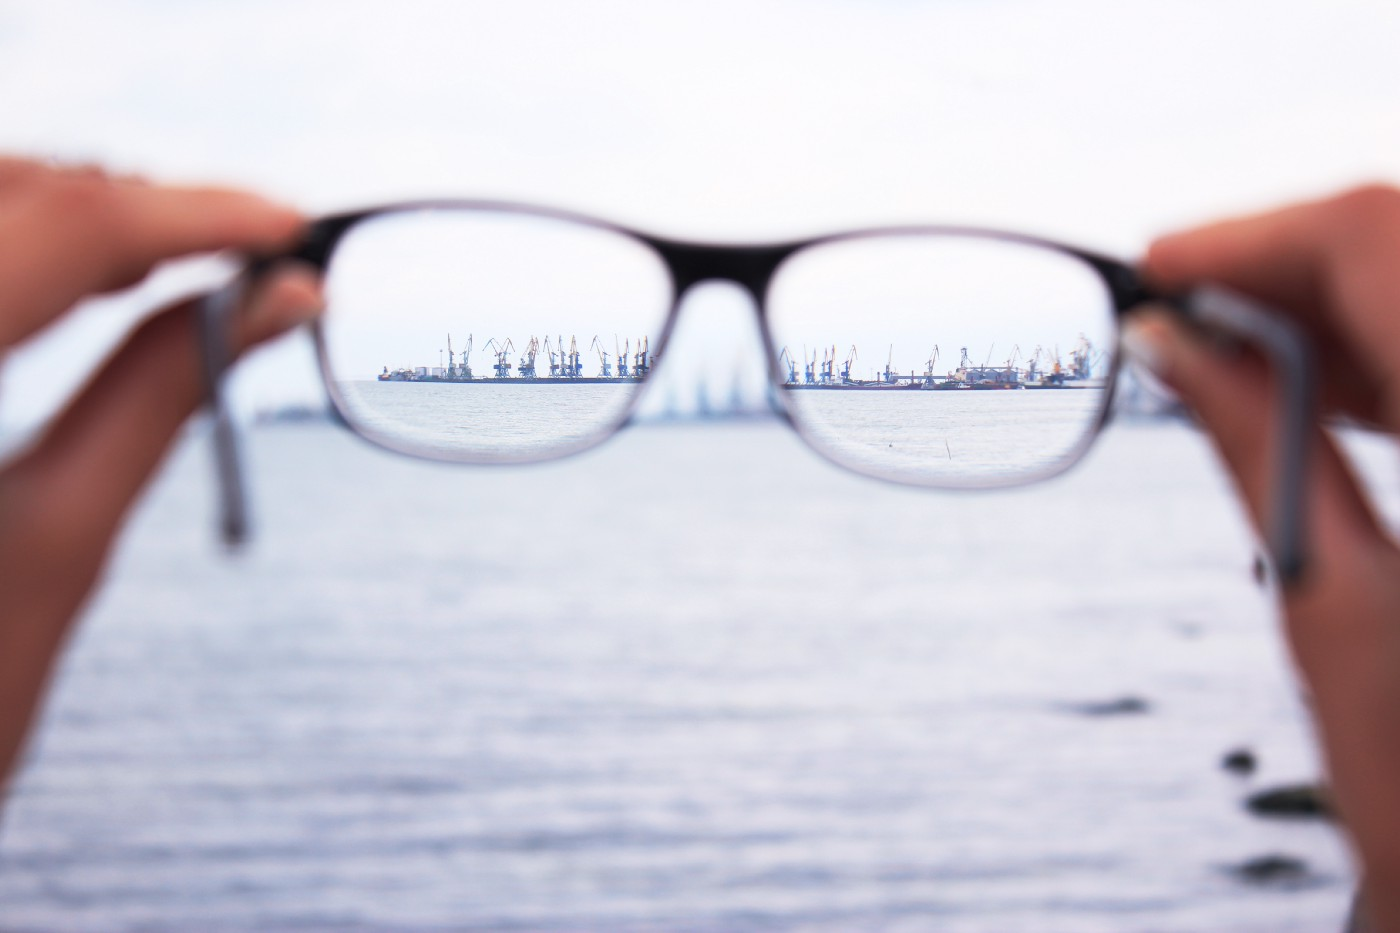 A pair of glasses in the foreground focus to reveal machinery in the ocean in the background